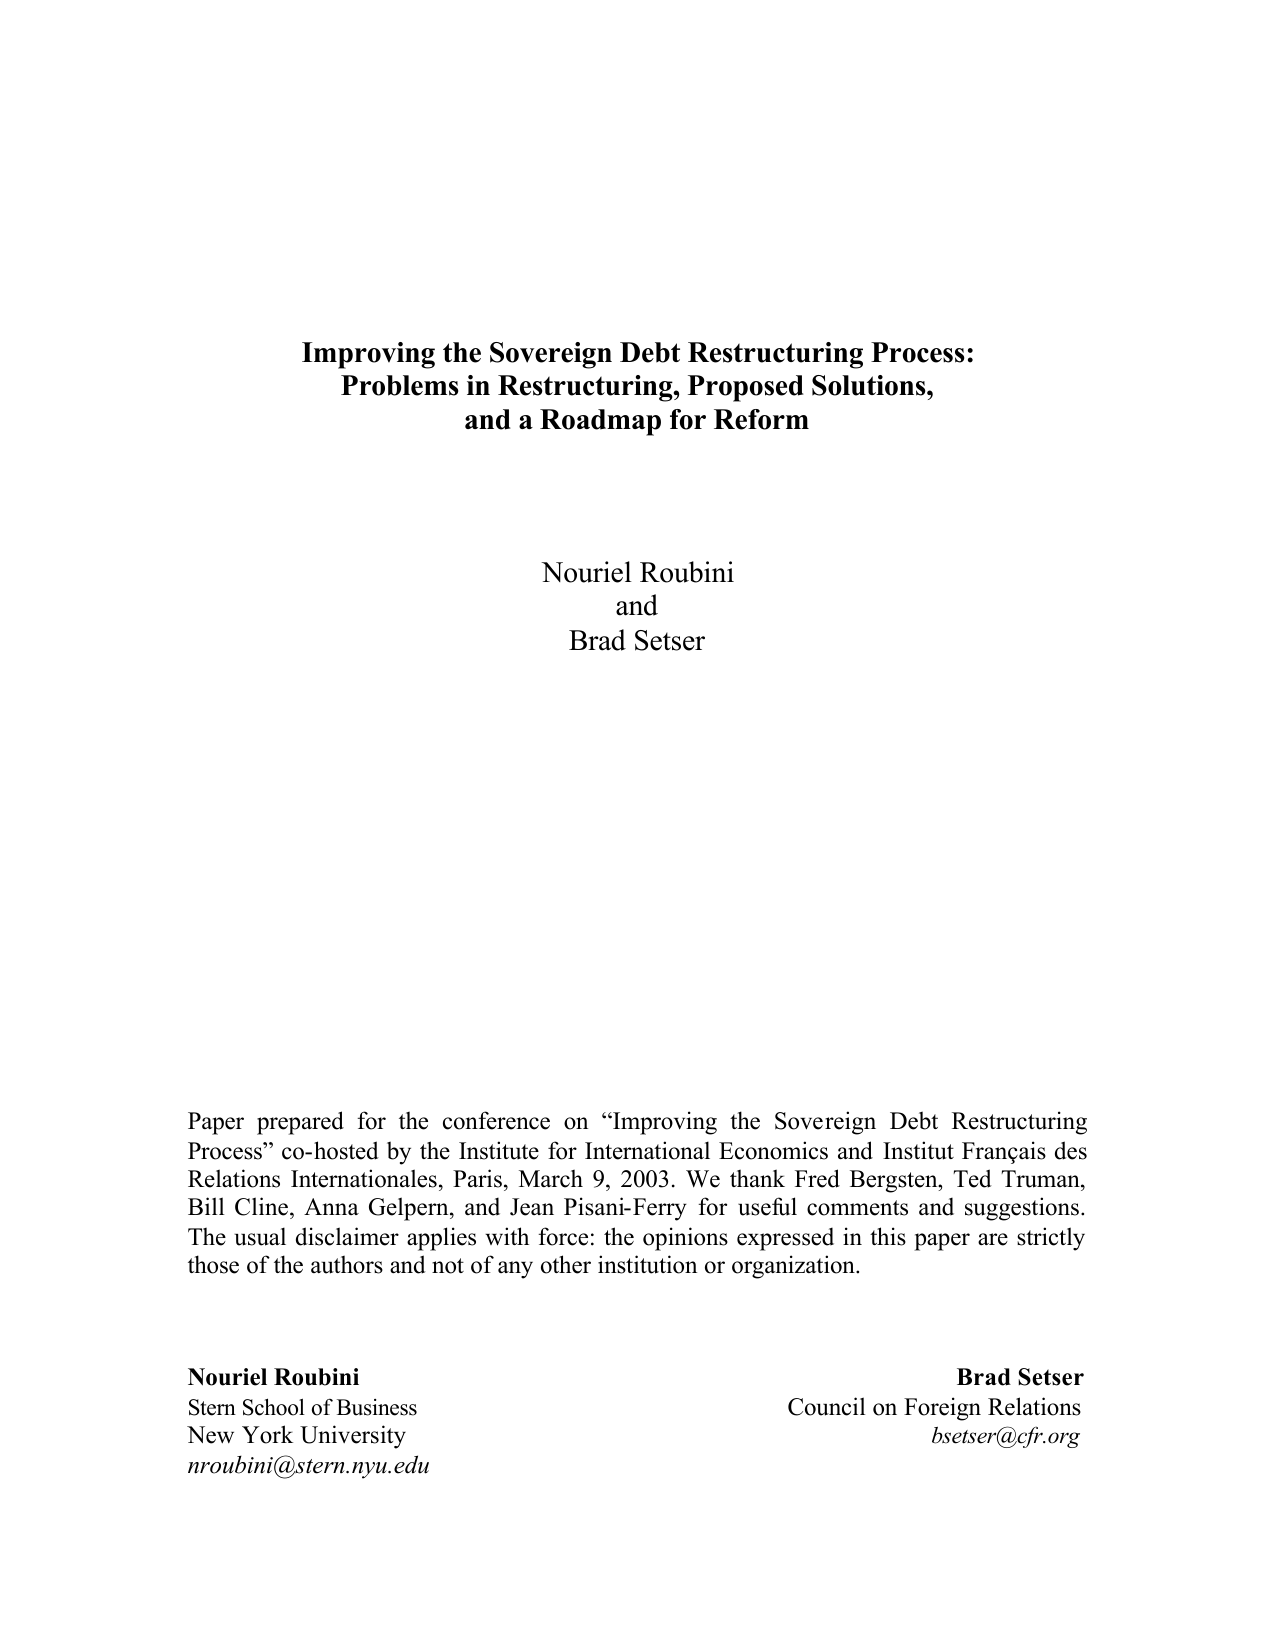 Paper: Improving the Sovereign Debt Restructuring Process